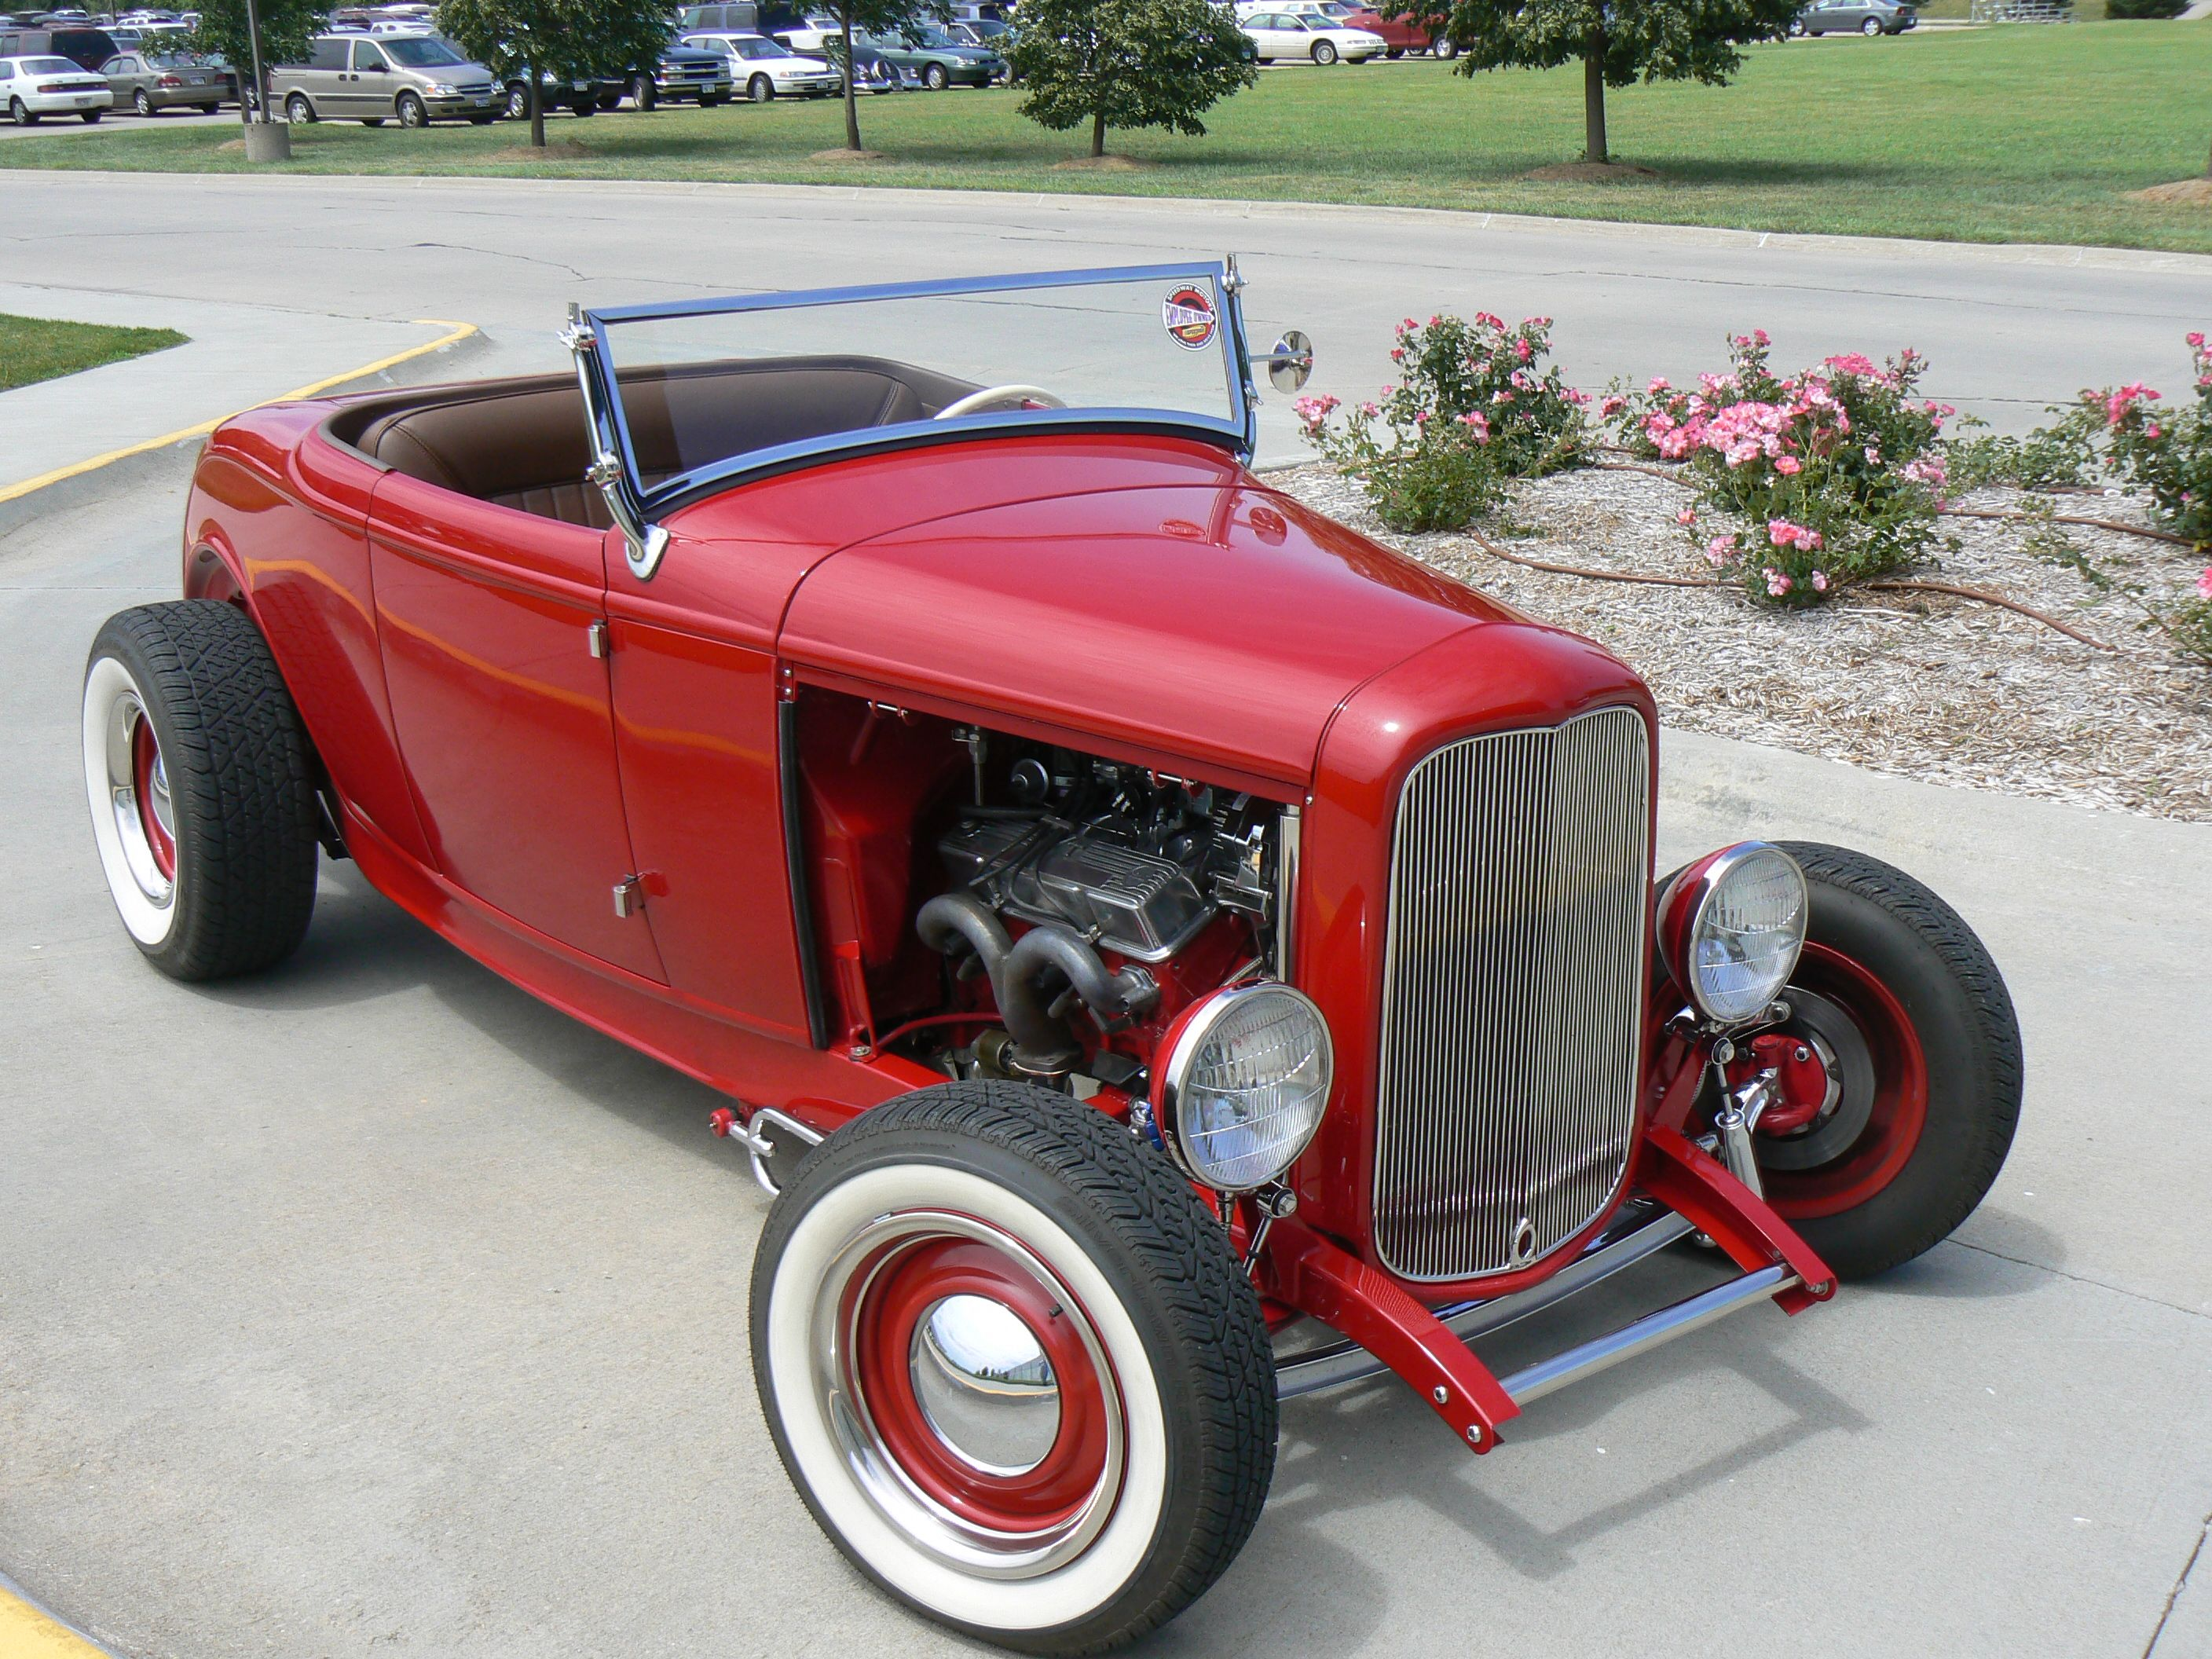 Classic Red Hot Rod